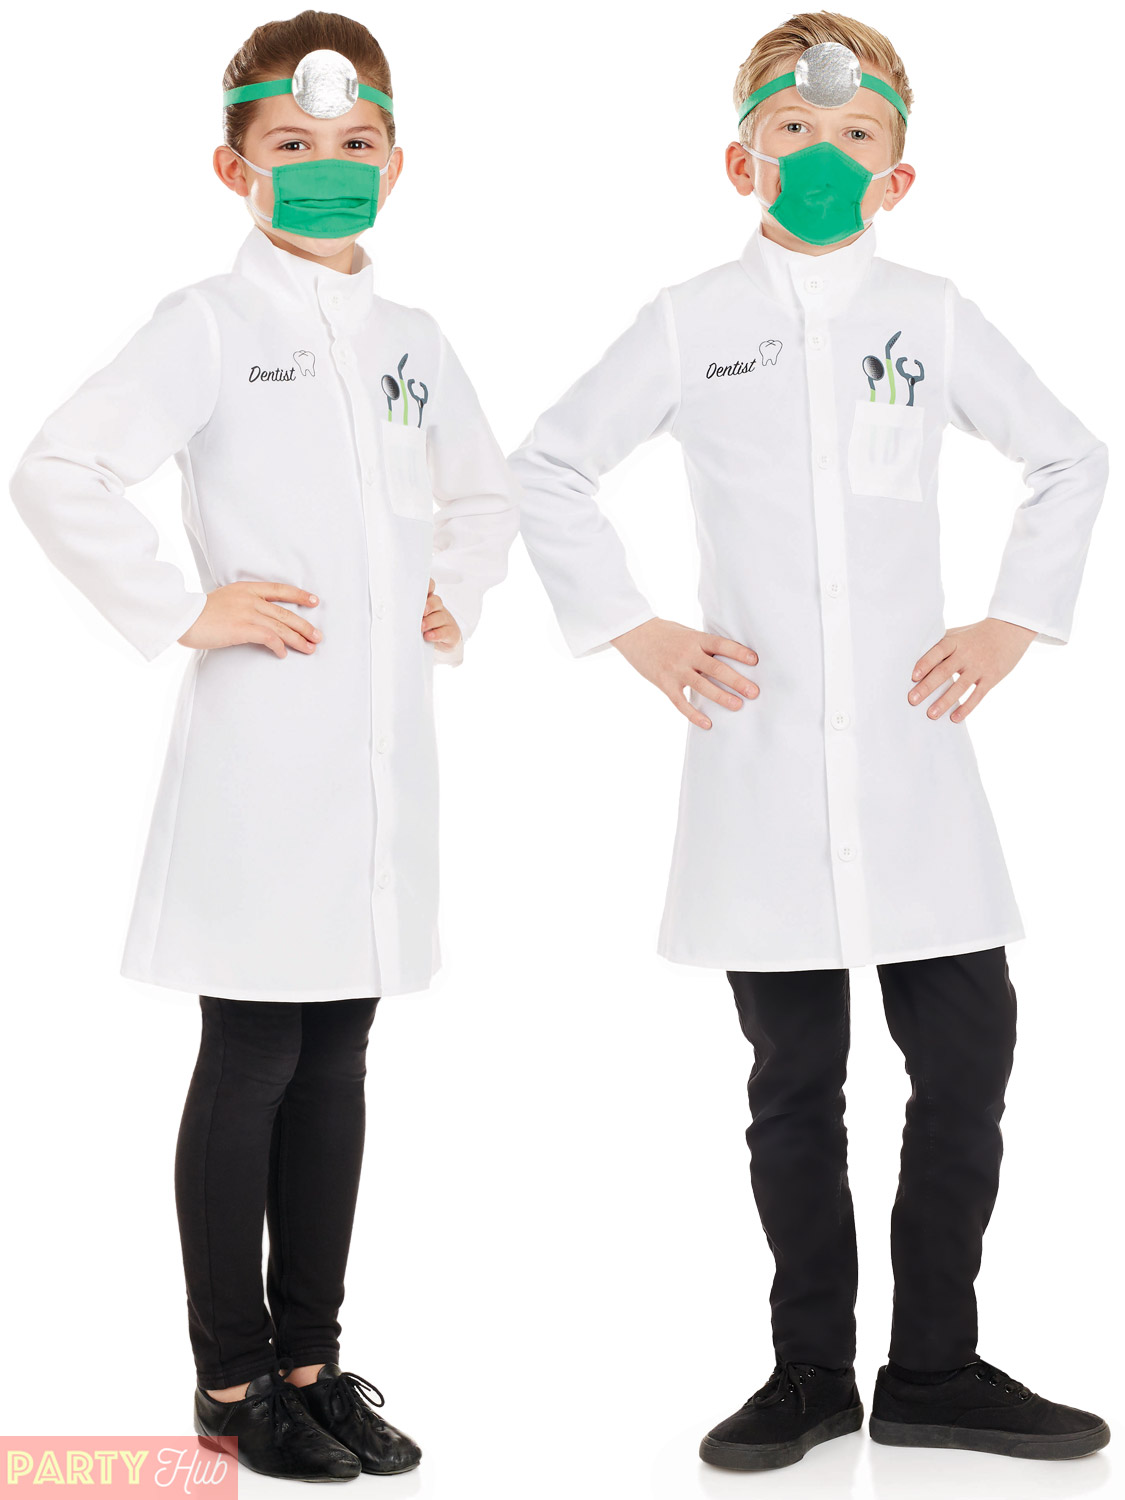 Lab Coat Costume Model Ideas